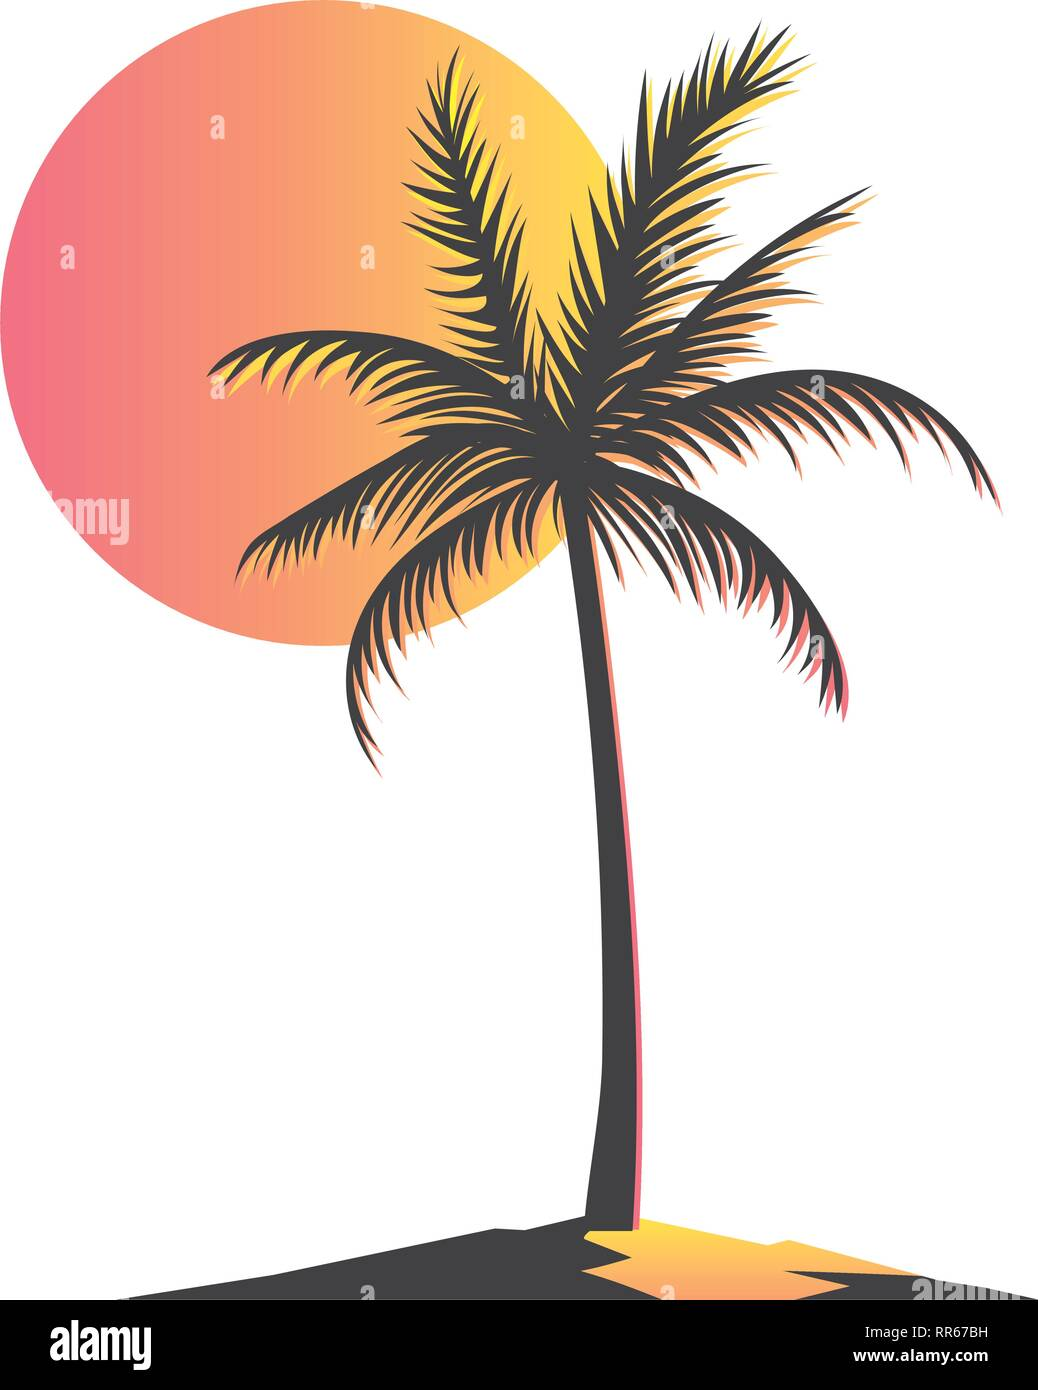 palm and sun - Stock Image